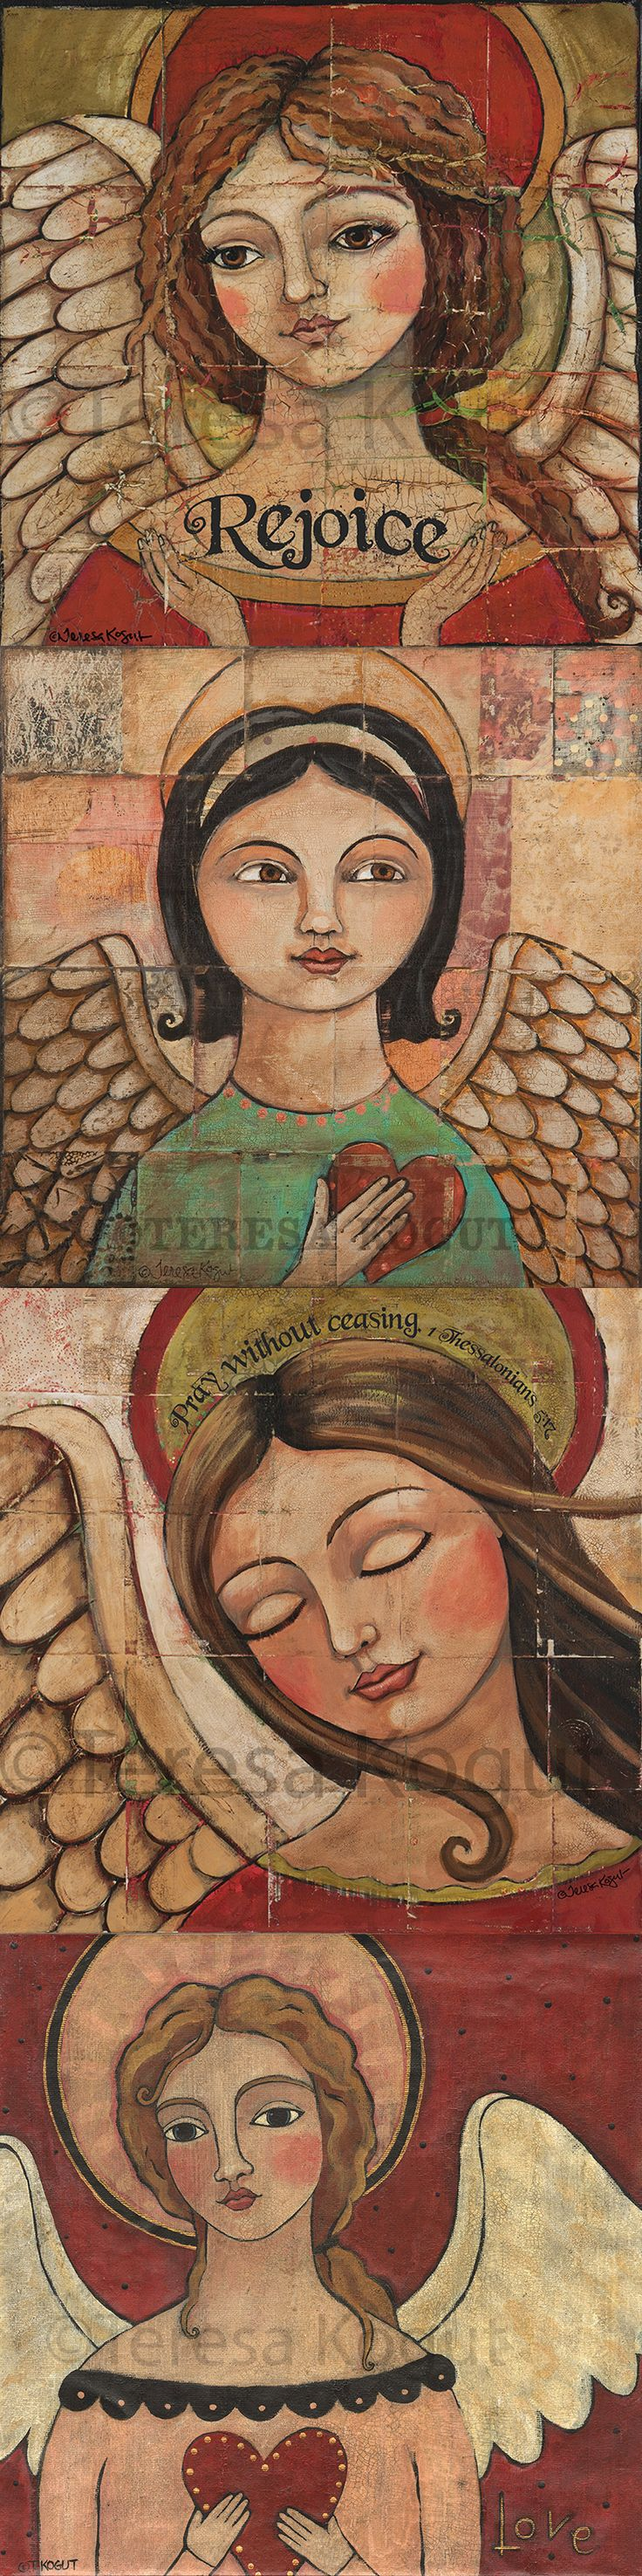 Angel prints for your home and or office. Bring a sense of calm and peace over the room with a Teresa Kogut angel print. Available at Etsy.